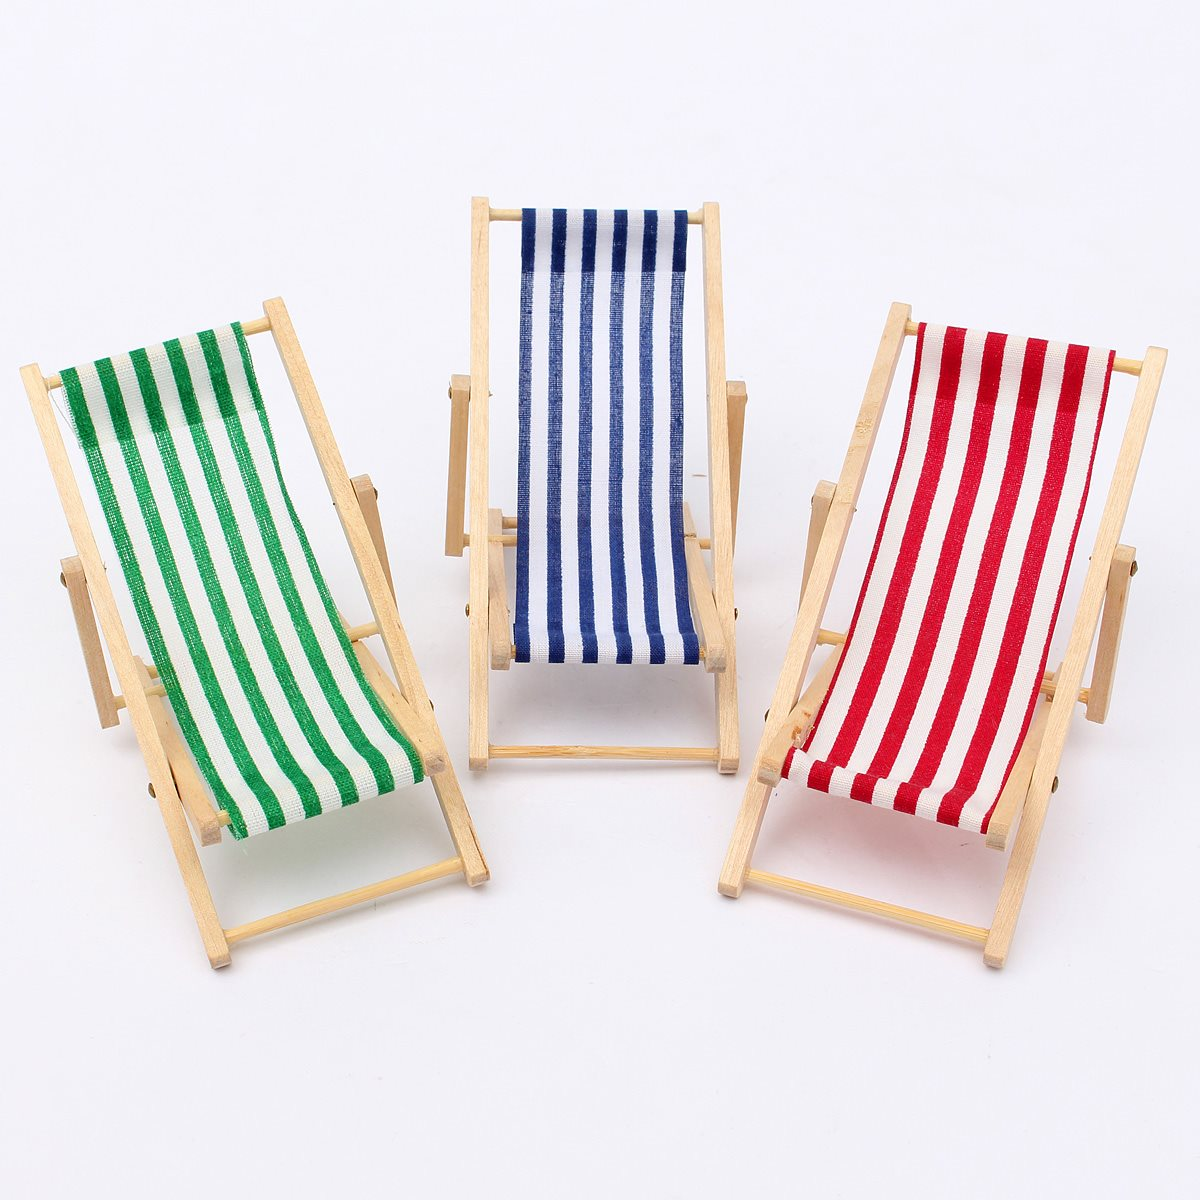 Wooden beach lounge chair - 1 12 Scale Foldable Wooden Deckchair Lounge Beach Chair For Lovely Miniature For Barbie Dolls